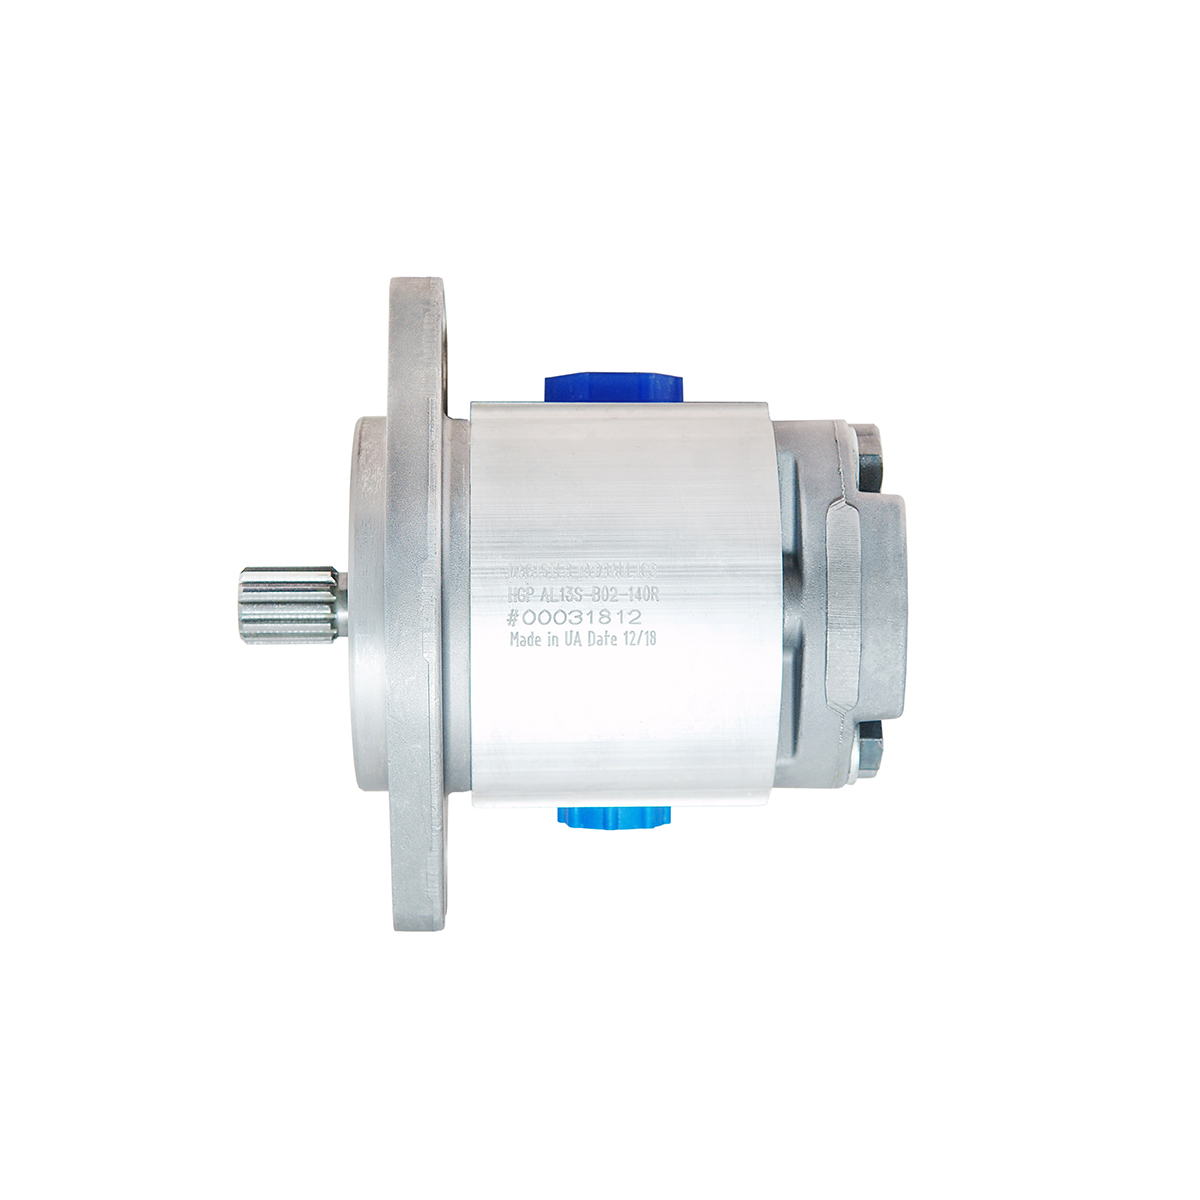 1.83 CID hydraulic gear pump, 13 tooth spline shaft counter-clockwise gear pump | Magister Hydraulics